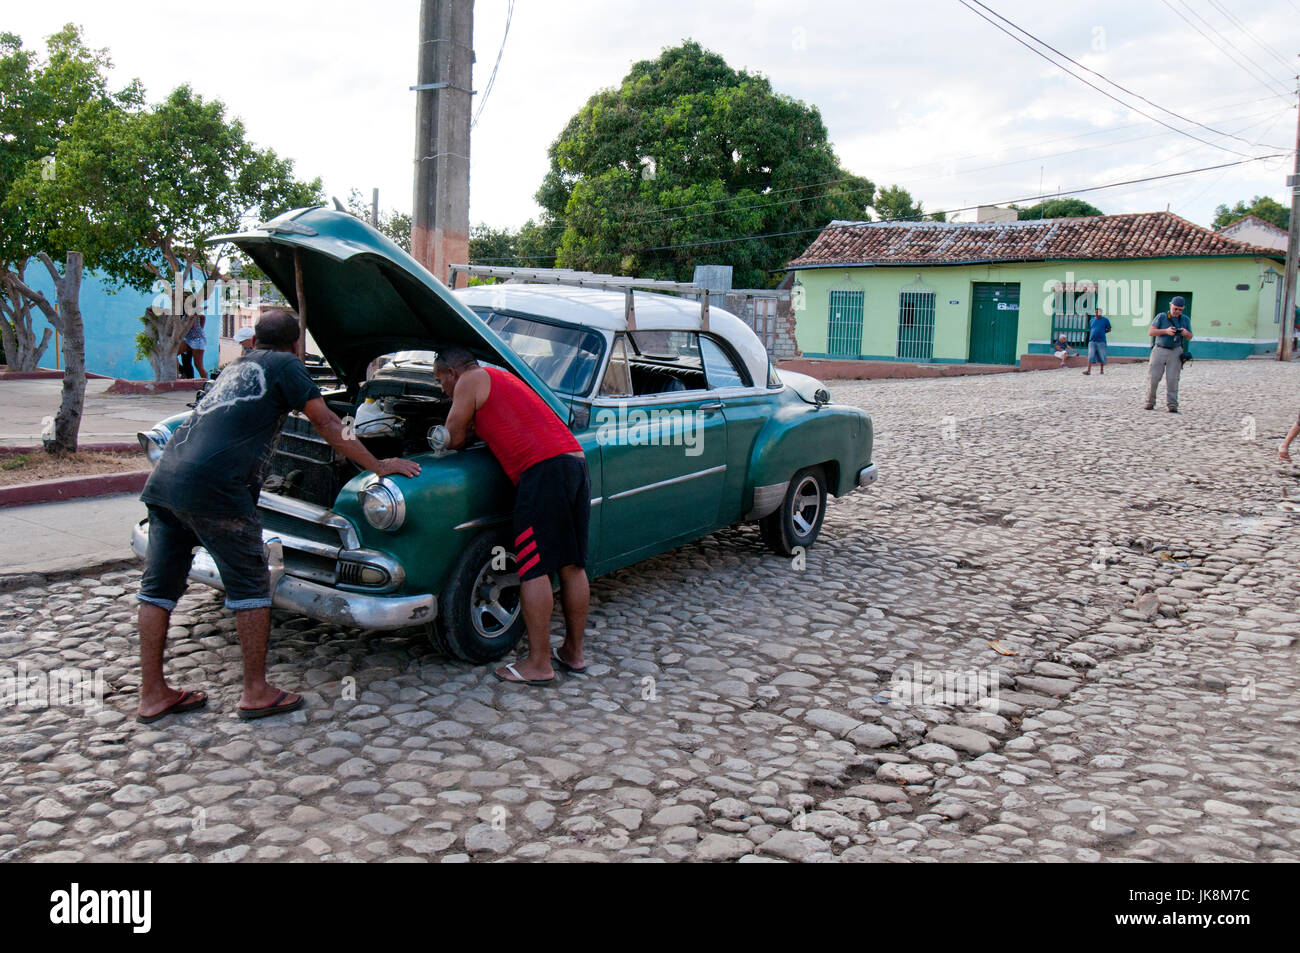 Cuban men working on broken-down old 1950's American car in Trinidad Cuba - Stock Image